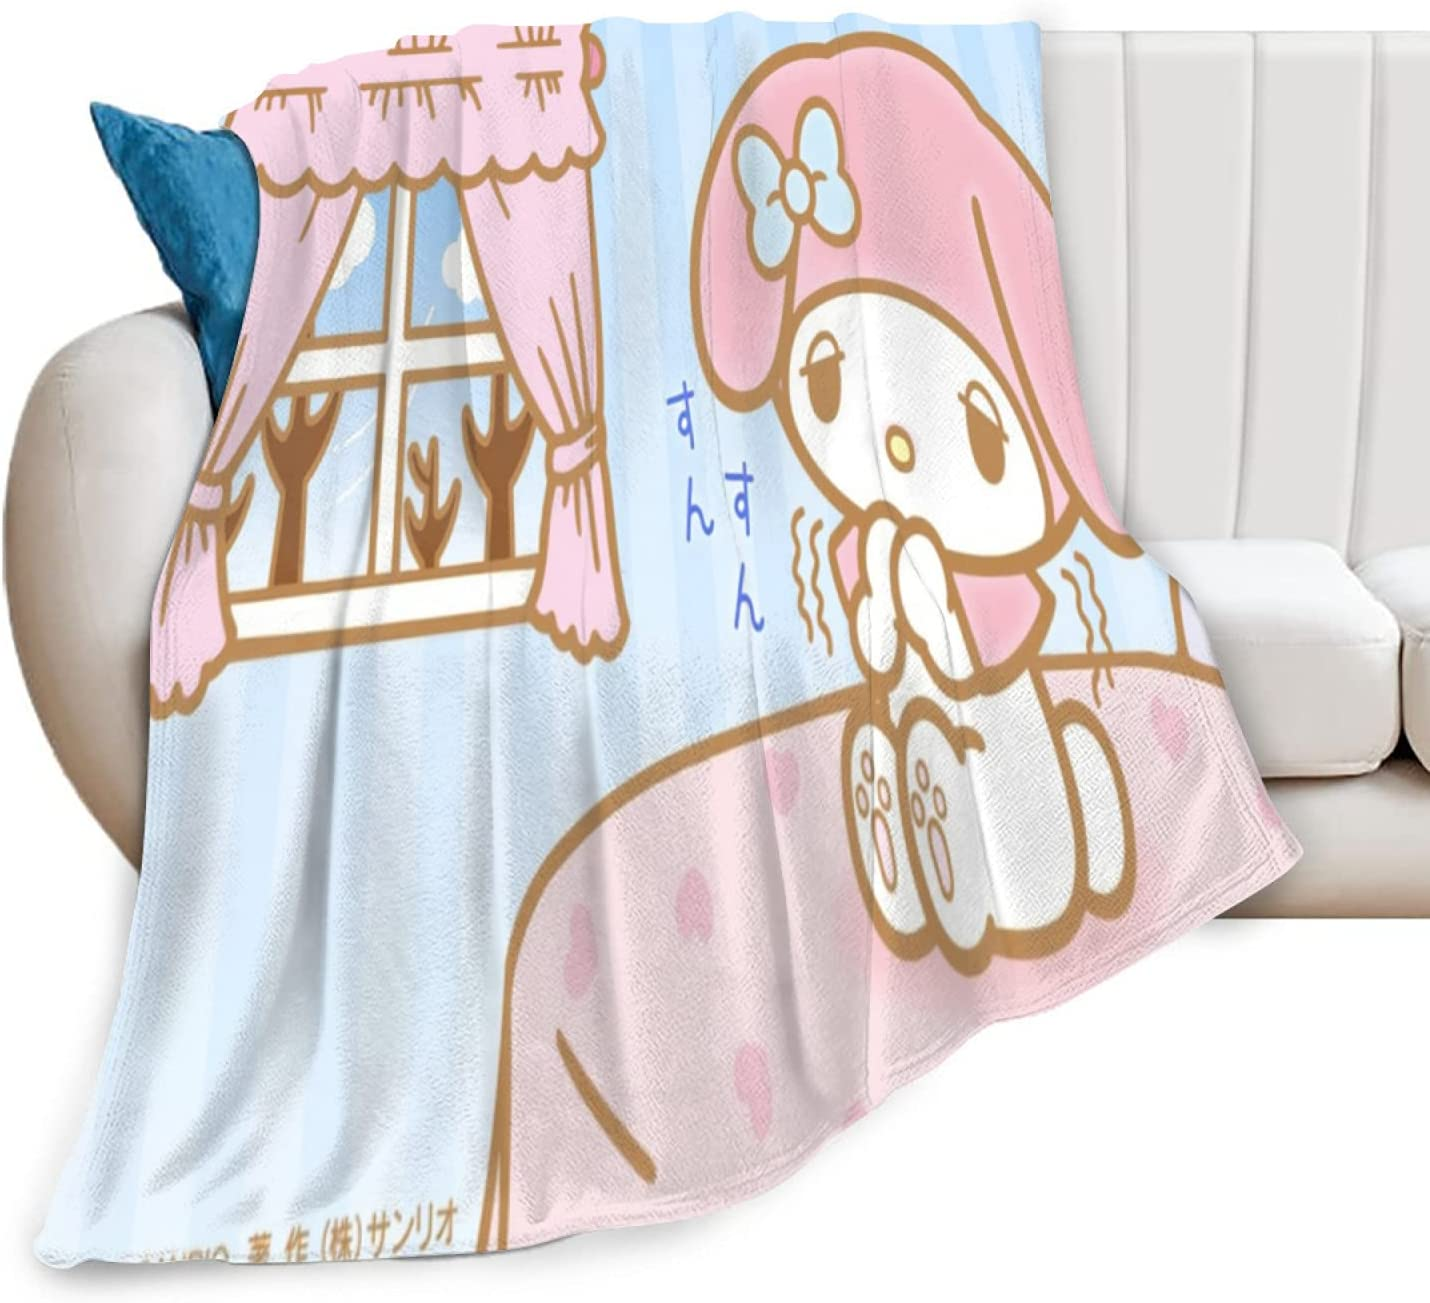 Sanrio mymelody Blanket Throw Super Soft Plush Hypoallergenic Be Seattle Manufacturer direct delivery Mall